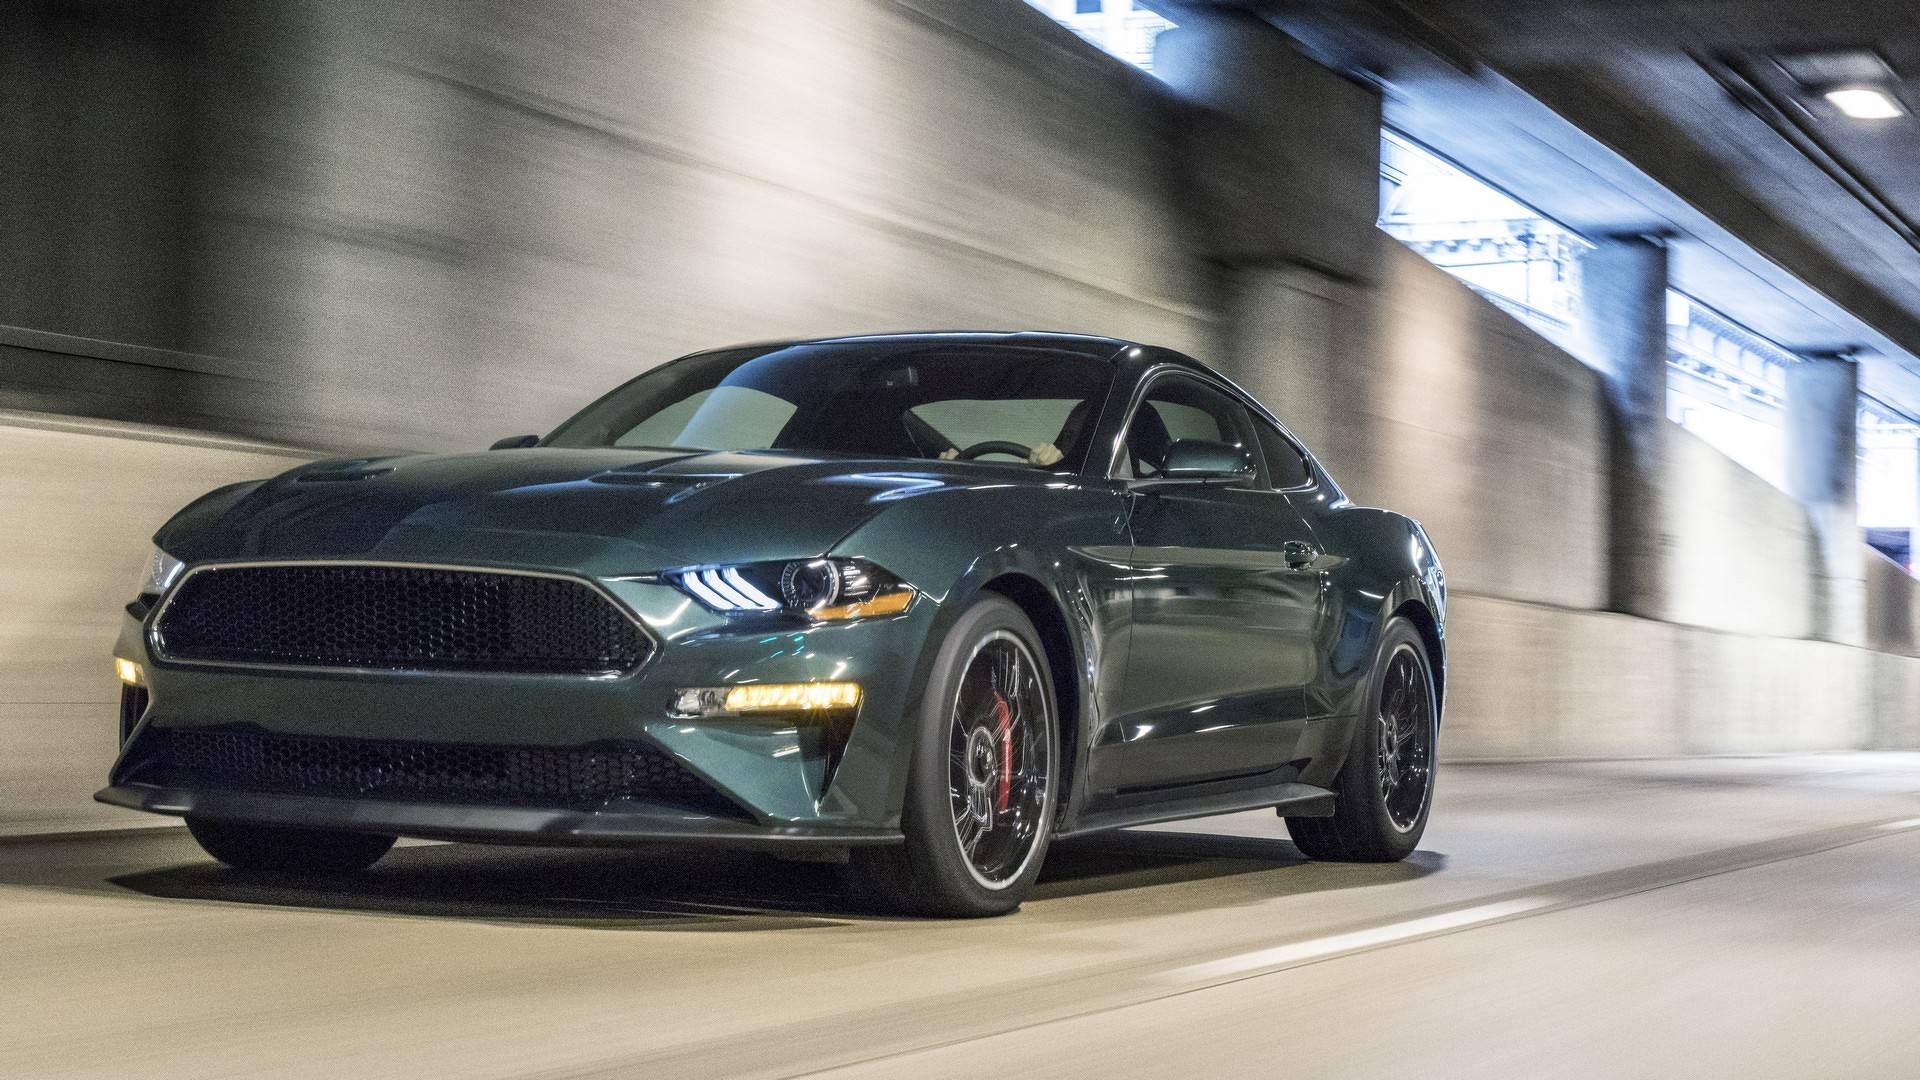 Ford mustang bullitt price goes up while pony car sales go down